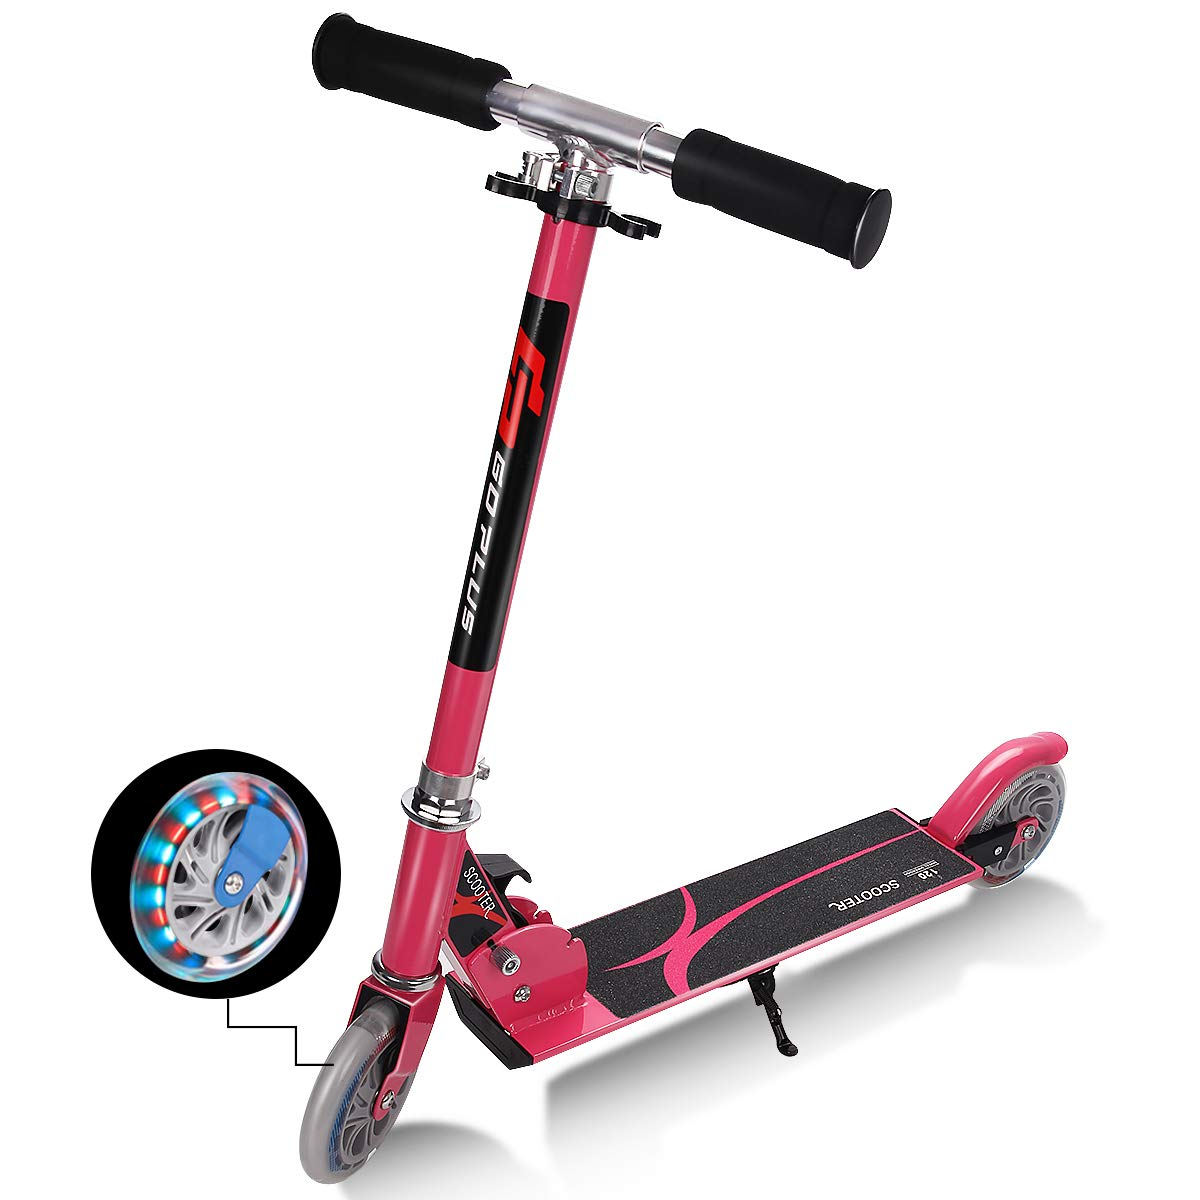 Goplus Folding Kick Scooter for Kids Deluxe Aluminum 2 Wheels Glider Adjustable Height with LED Light Up Rear Wheel for Girls and Boys (Pink) by Goplus